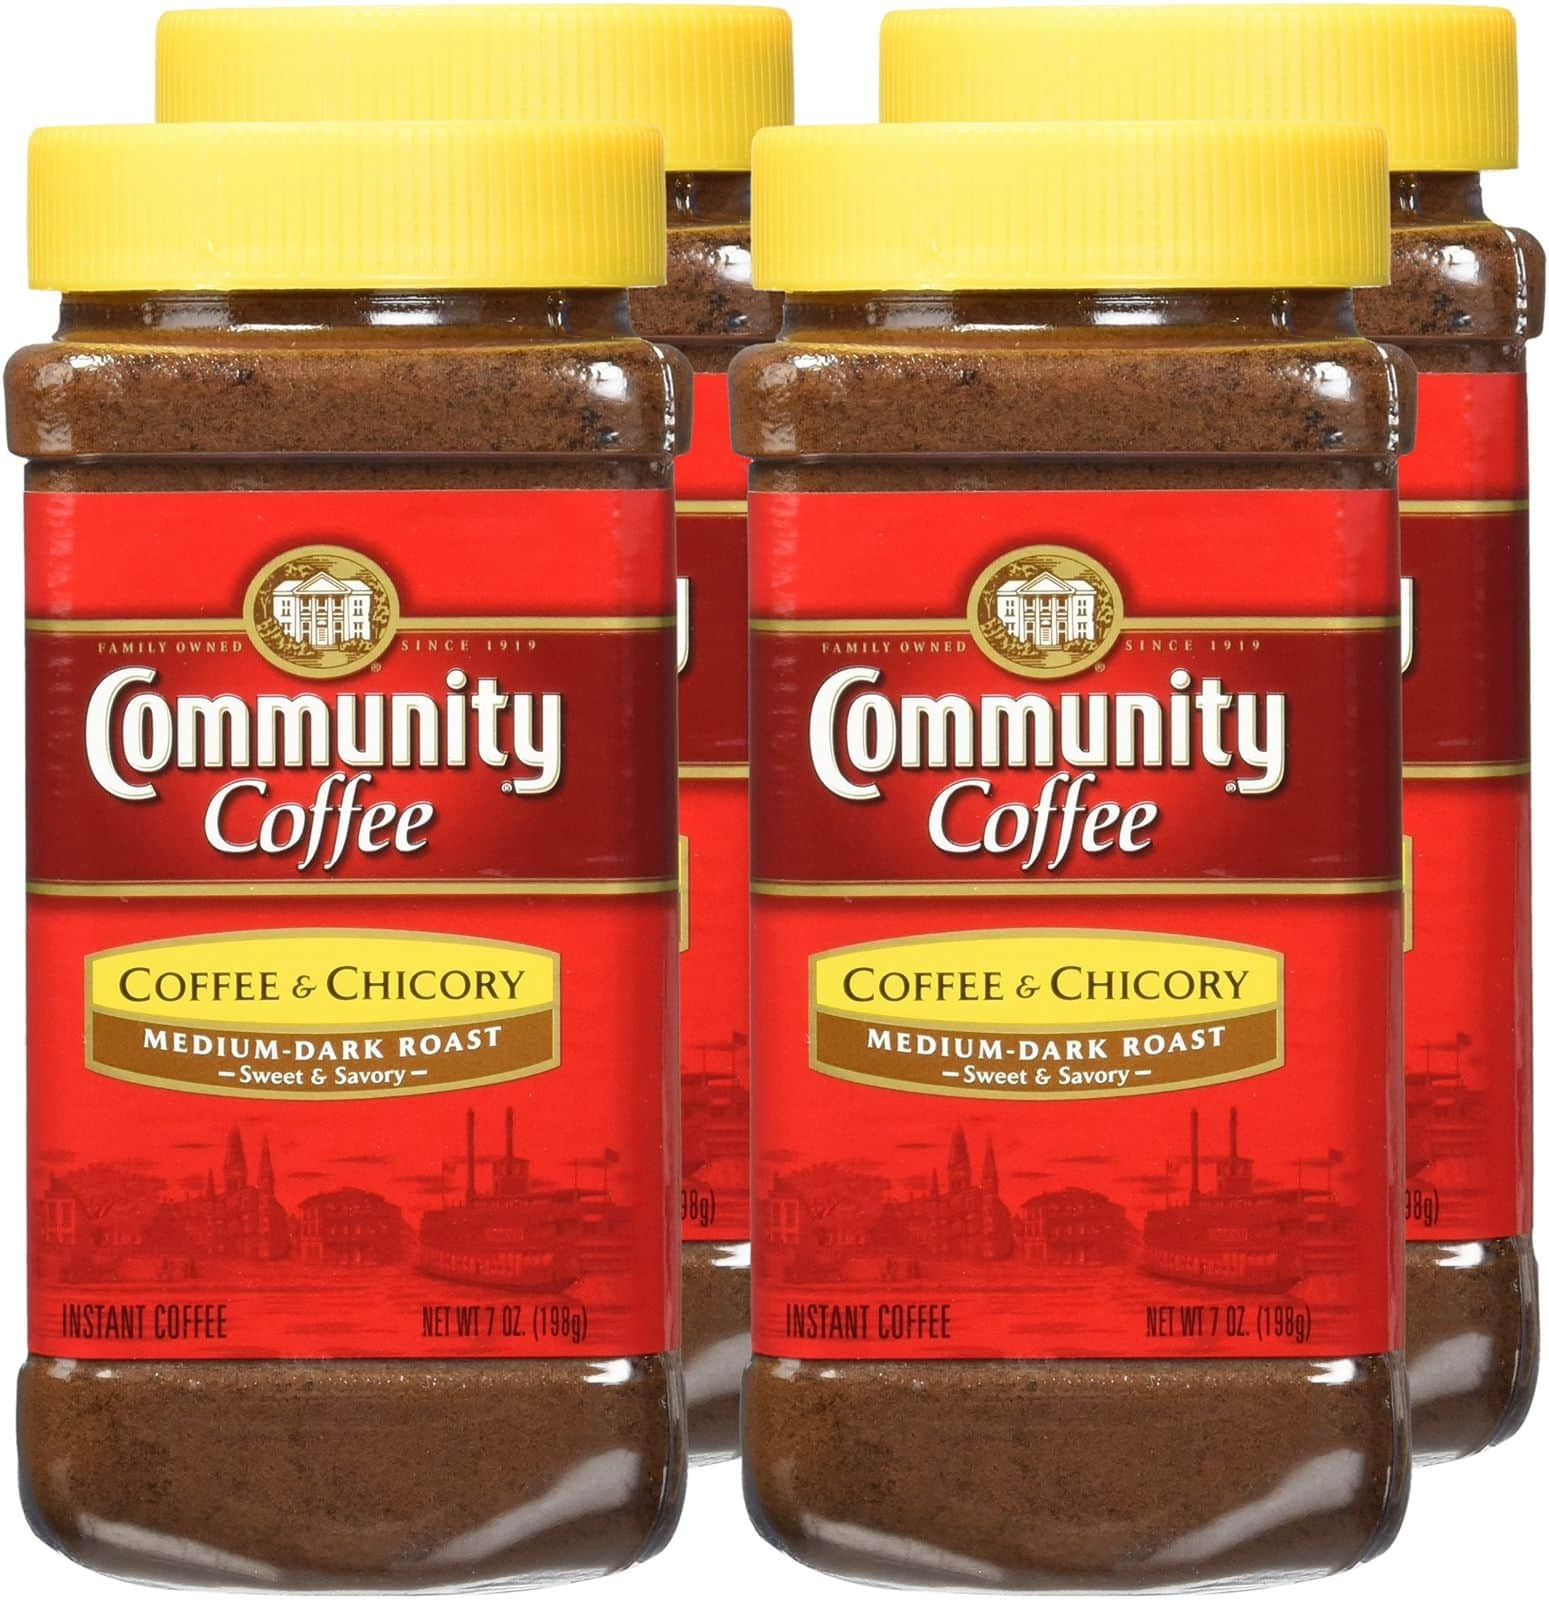 Community Coffee and Chicory Instant Coffee, 7 Ounce (Pack of 4) 4 Count + Free Shipping $12.74